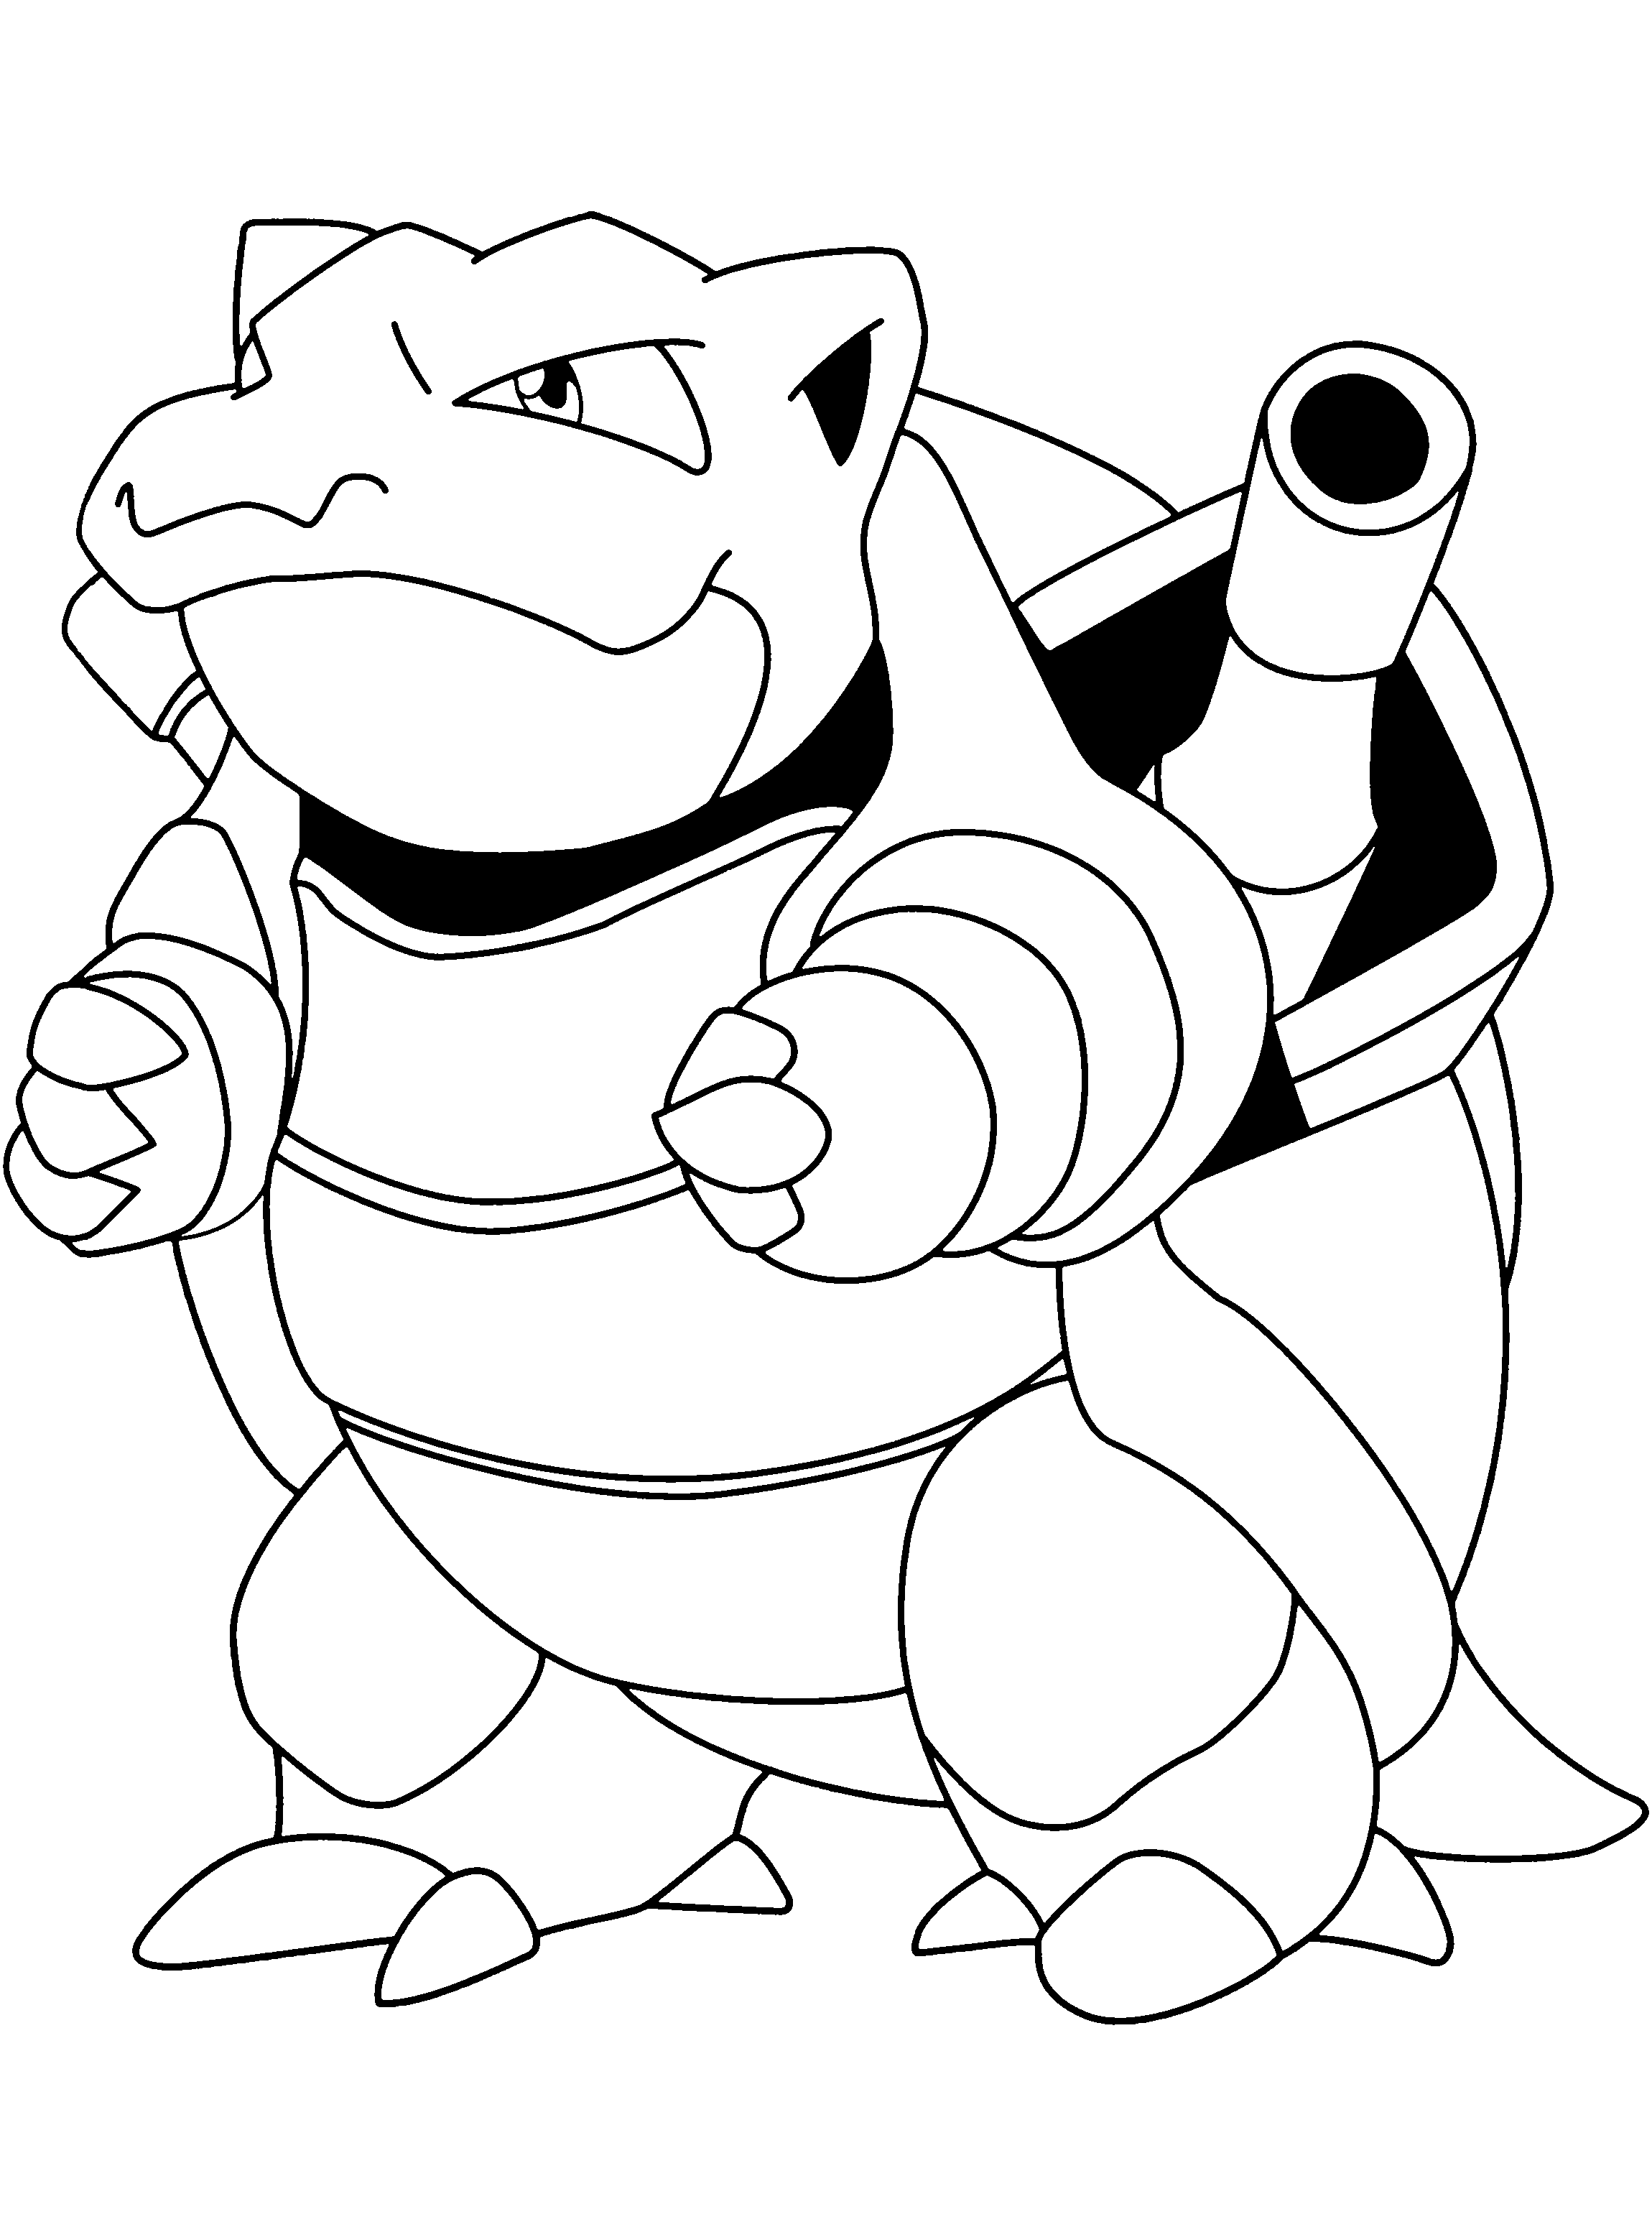 free coloring pokemon pages legendary pokemon coloring pages free k5 worksheets pokemon free pages coloring